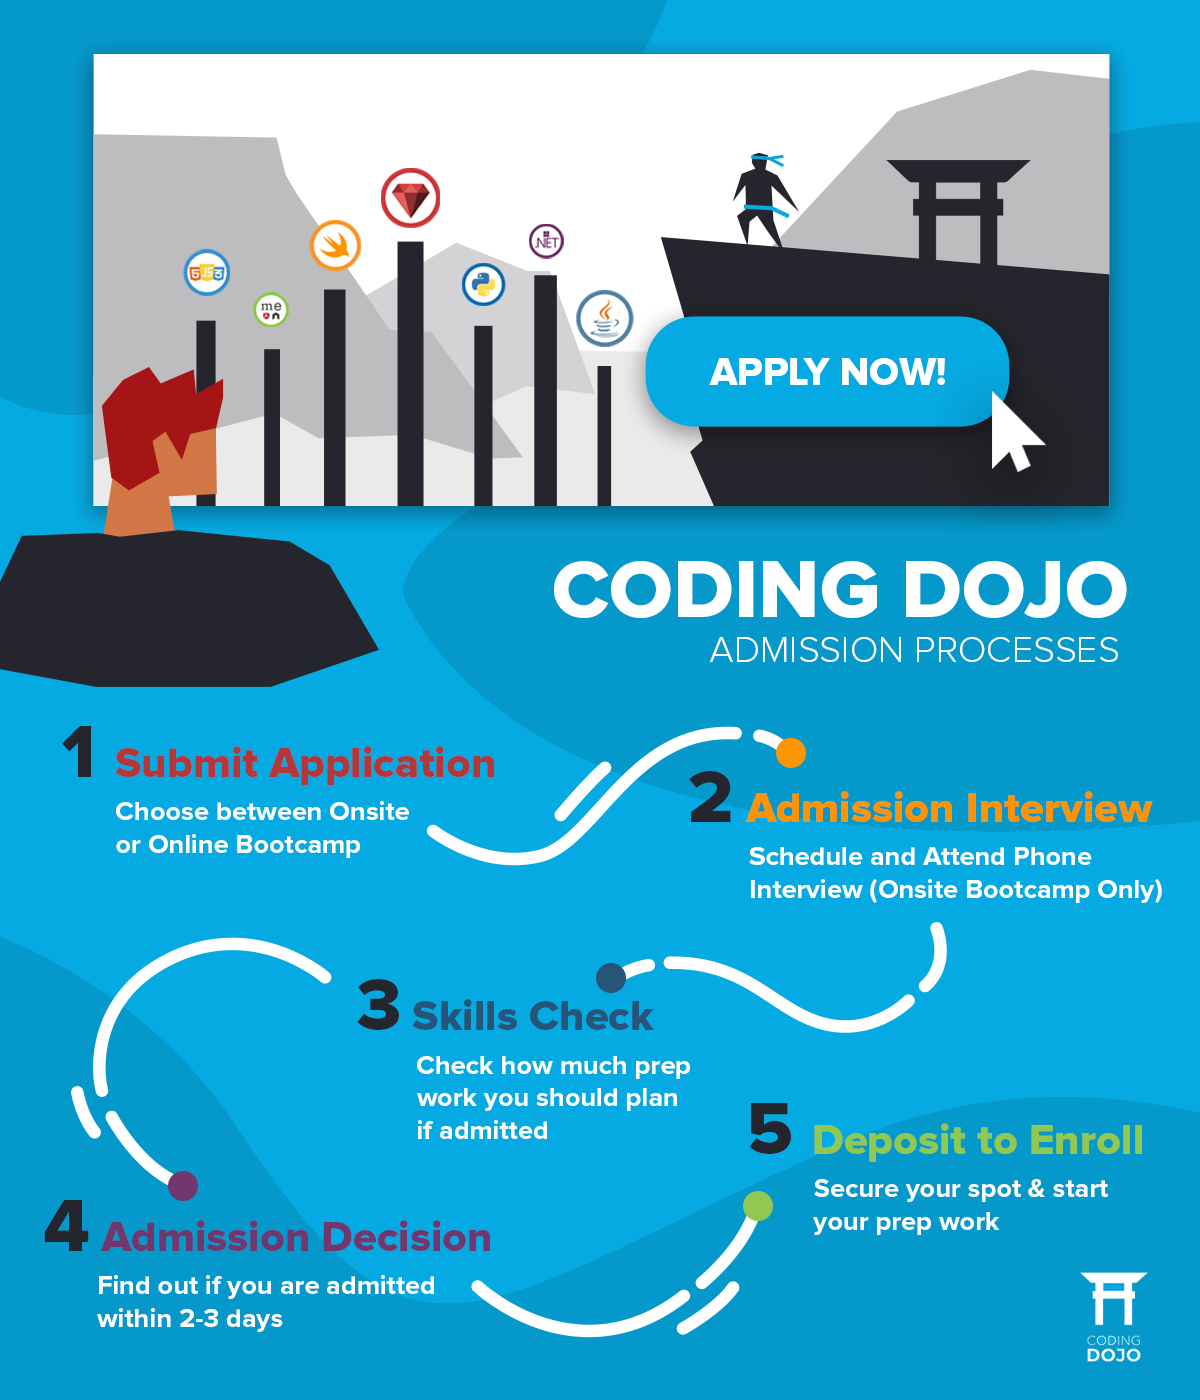 Procrastination inner graphics - Copy (2)  - Procrastination inner graphics Copy 2 - Overcoming Procrastination: A Brief Guide for Career Changers and Aspiring Developers